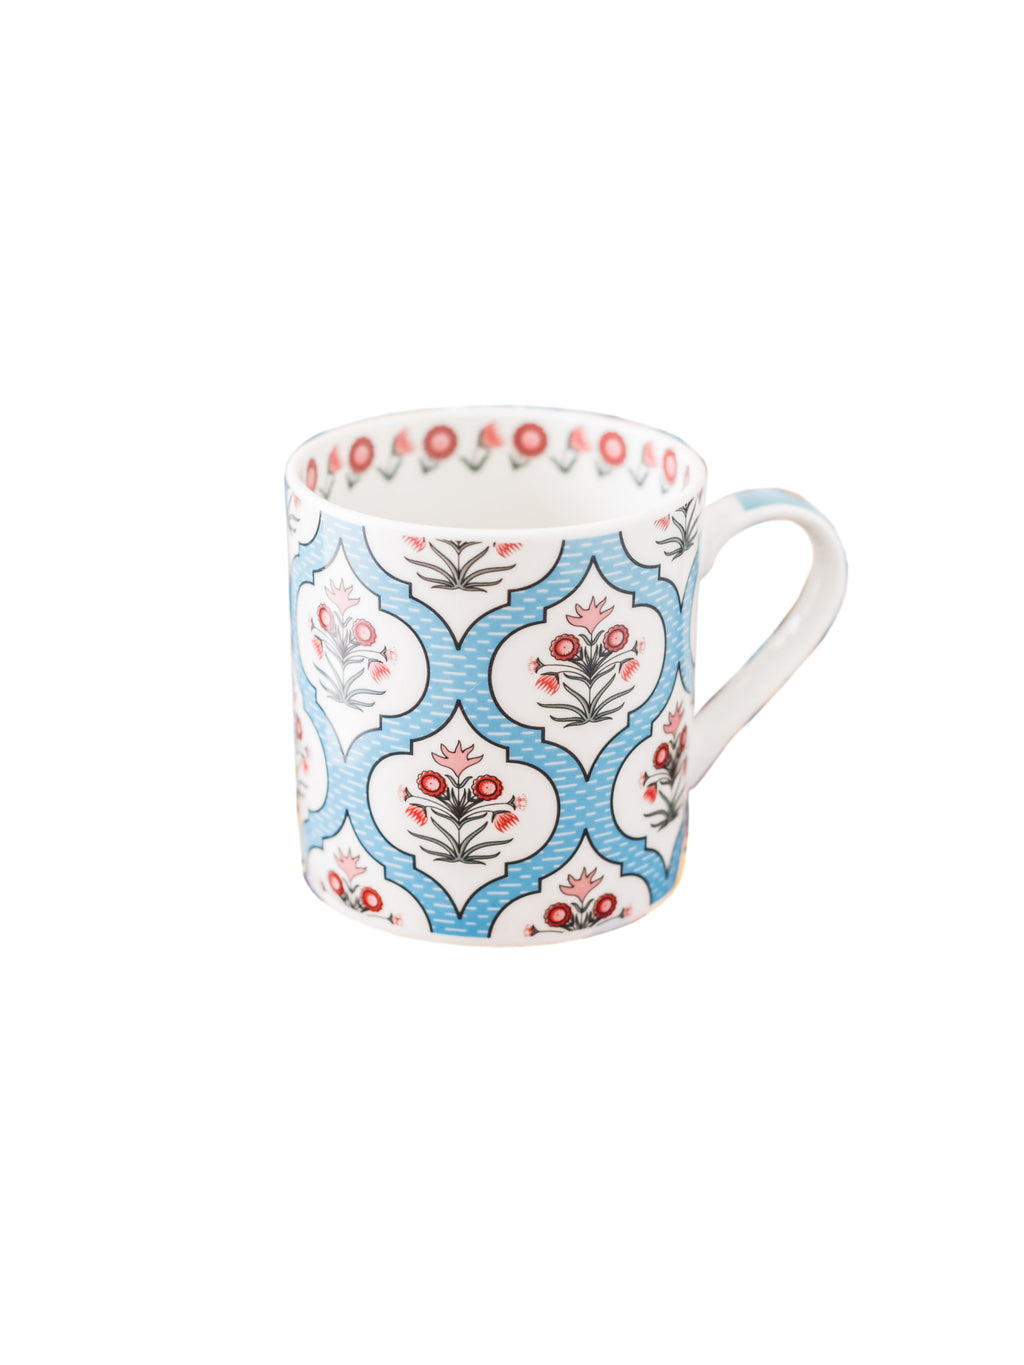 Bone China Tea Cups/Coffee Mugs with Multi Color Design (Set of 6 Mugs). (Made in India) ZOECM1126